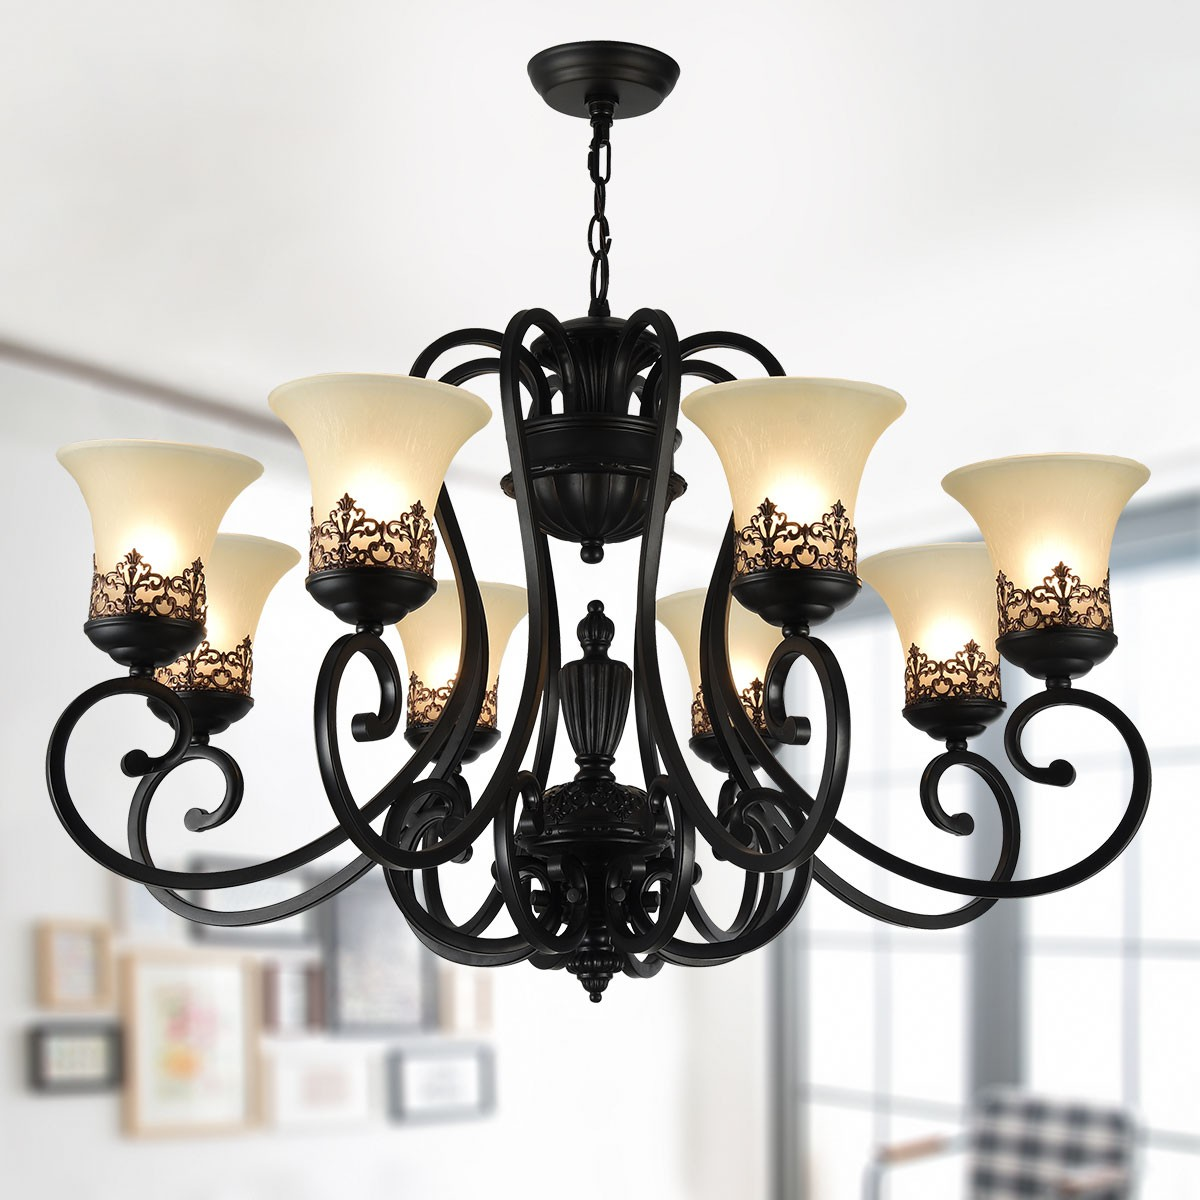 8 Light Black Wrought Iron Chandelier With Gl Shades Dk 6318 8s